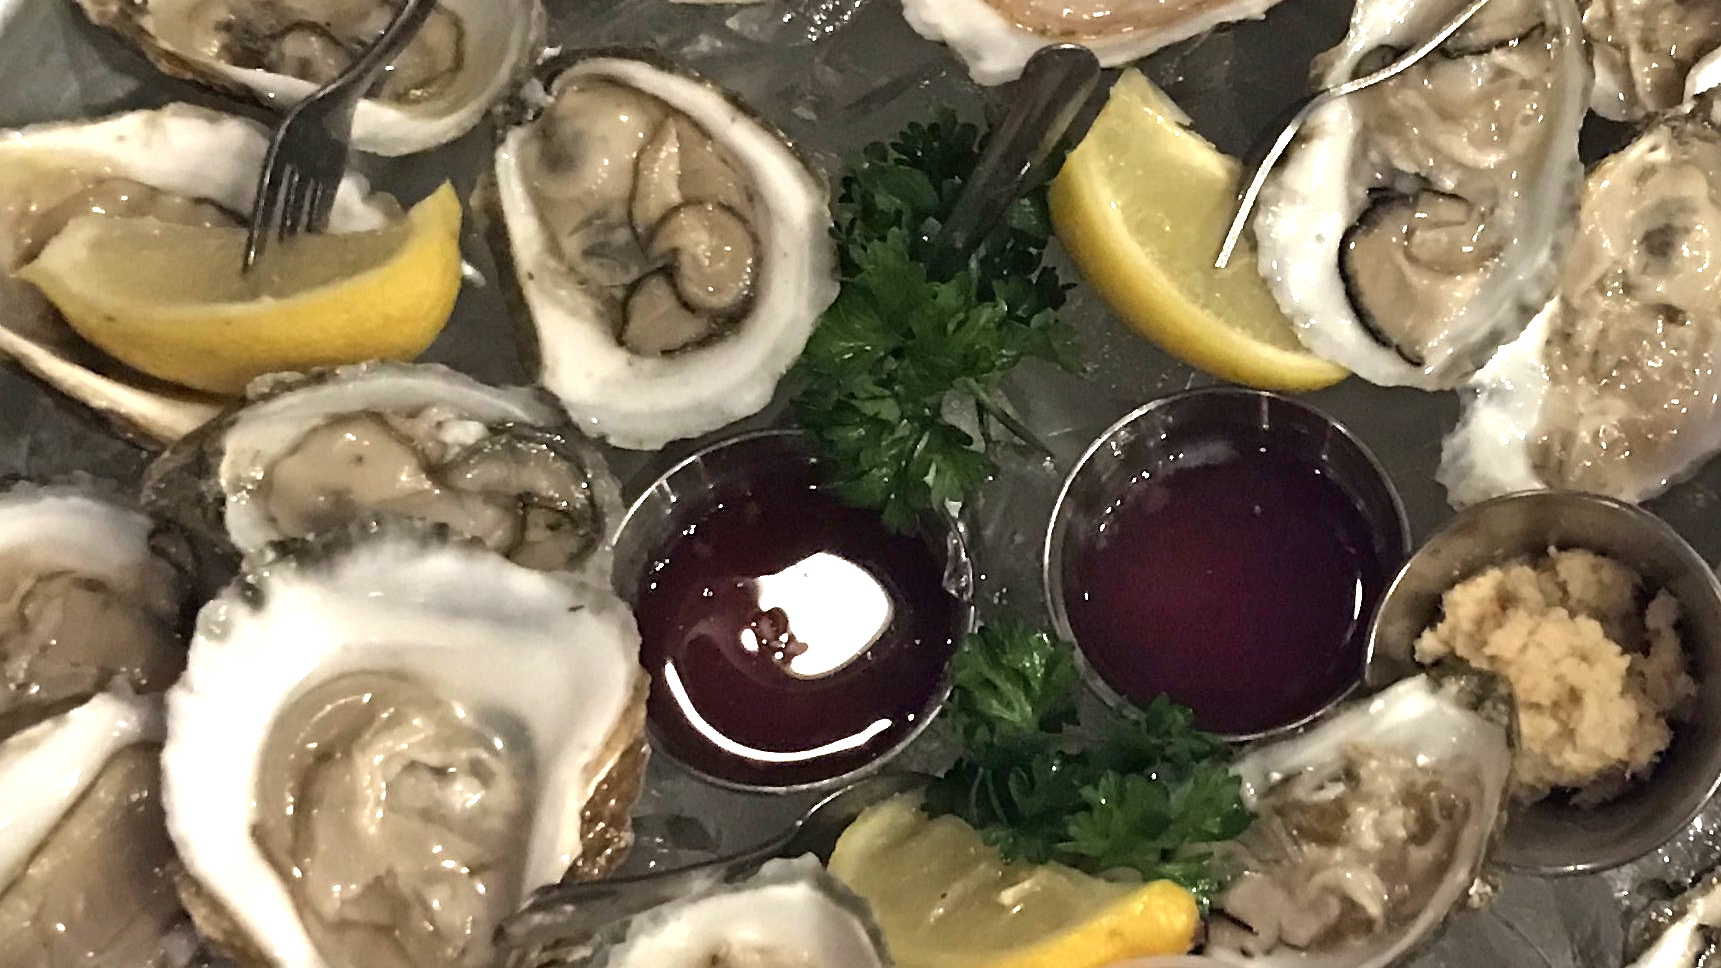 BoatHouseGrilleEssexMAOysters.jpg